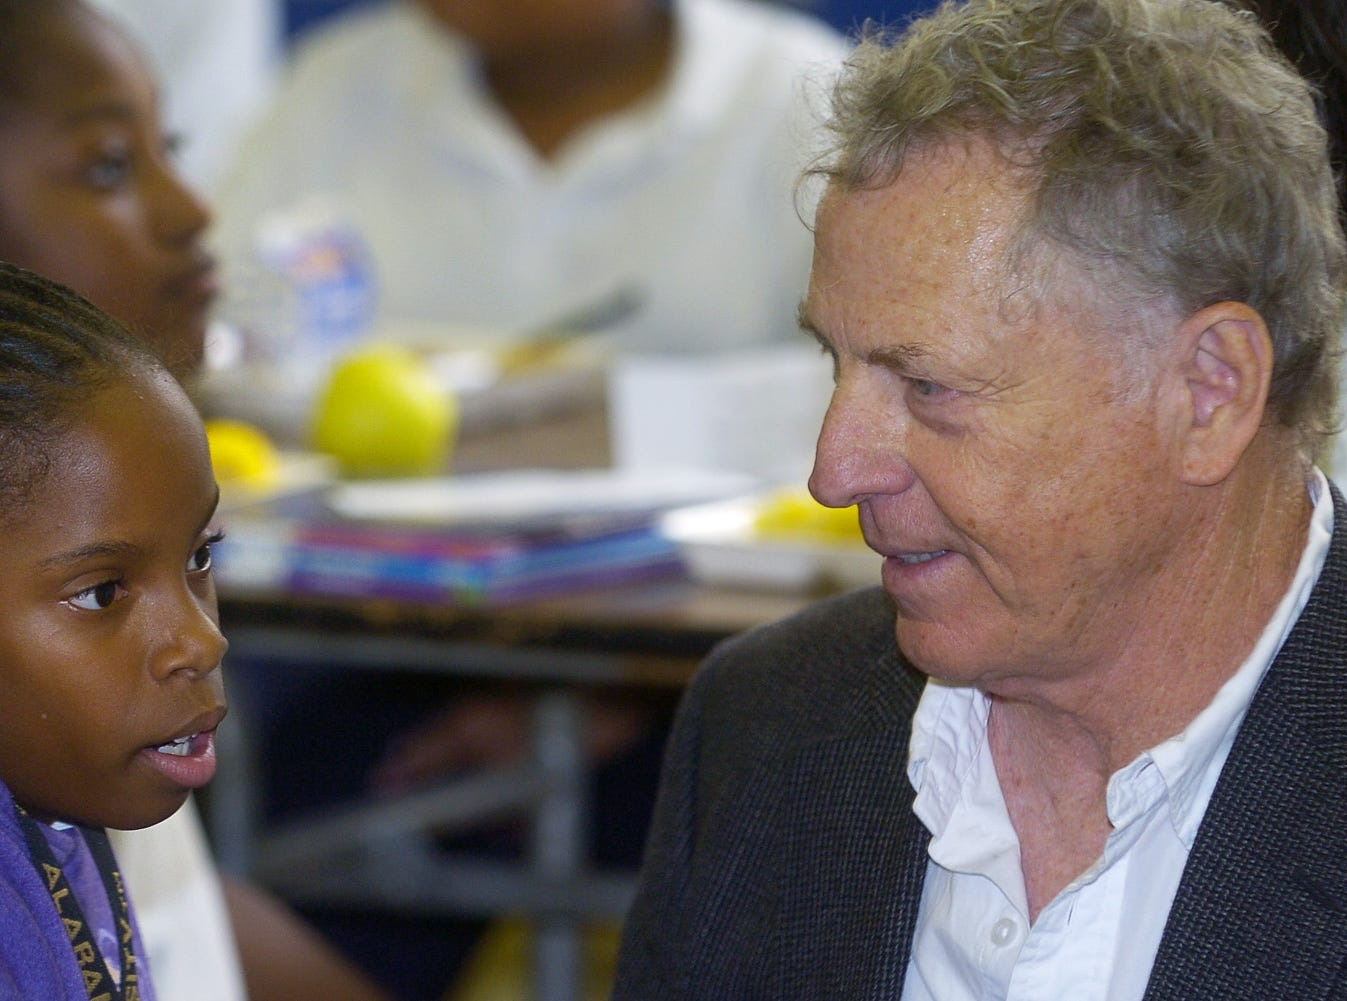 November 13, 2007 - Southern Poverty Law Center co-founder Morris Dees, right, pauses to chat with Eboni Graham, left, in the cafeteria at Floyd Elementary school during the Mix It Up at Lunch Day program at the school in Montgomery, Ala. on Tuesday November 13, 2007. Mix It Up is part of the Teaching Tolerance program. 10,000 schools and over four million students are taking part in the program. (Montgomery Advertiser, Mickey Welsh)